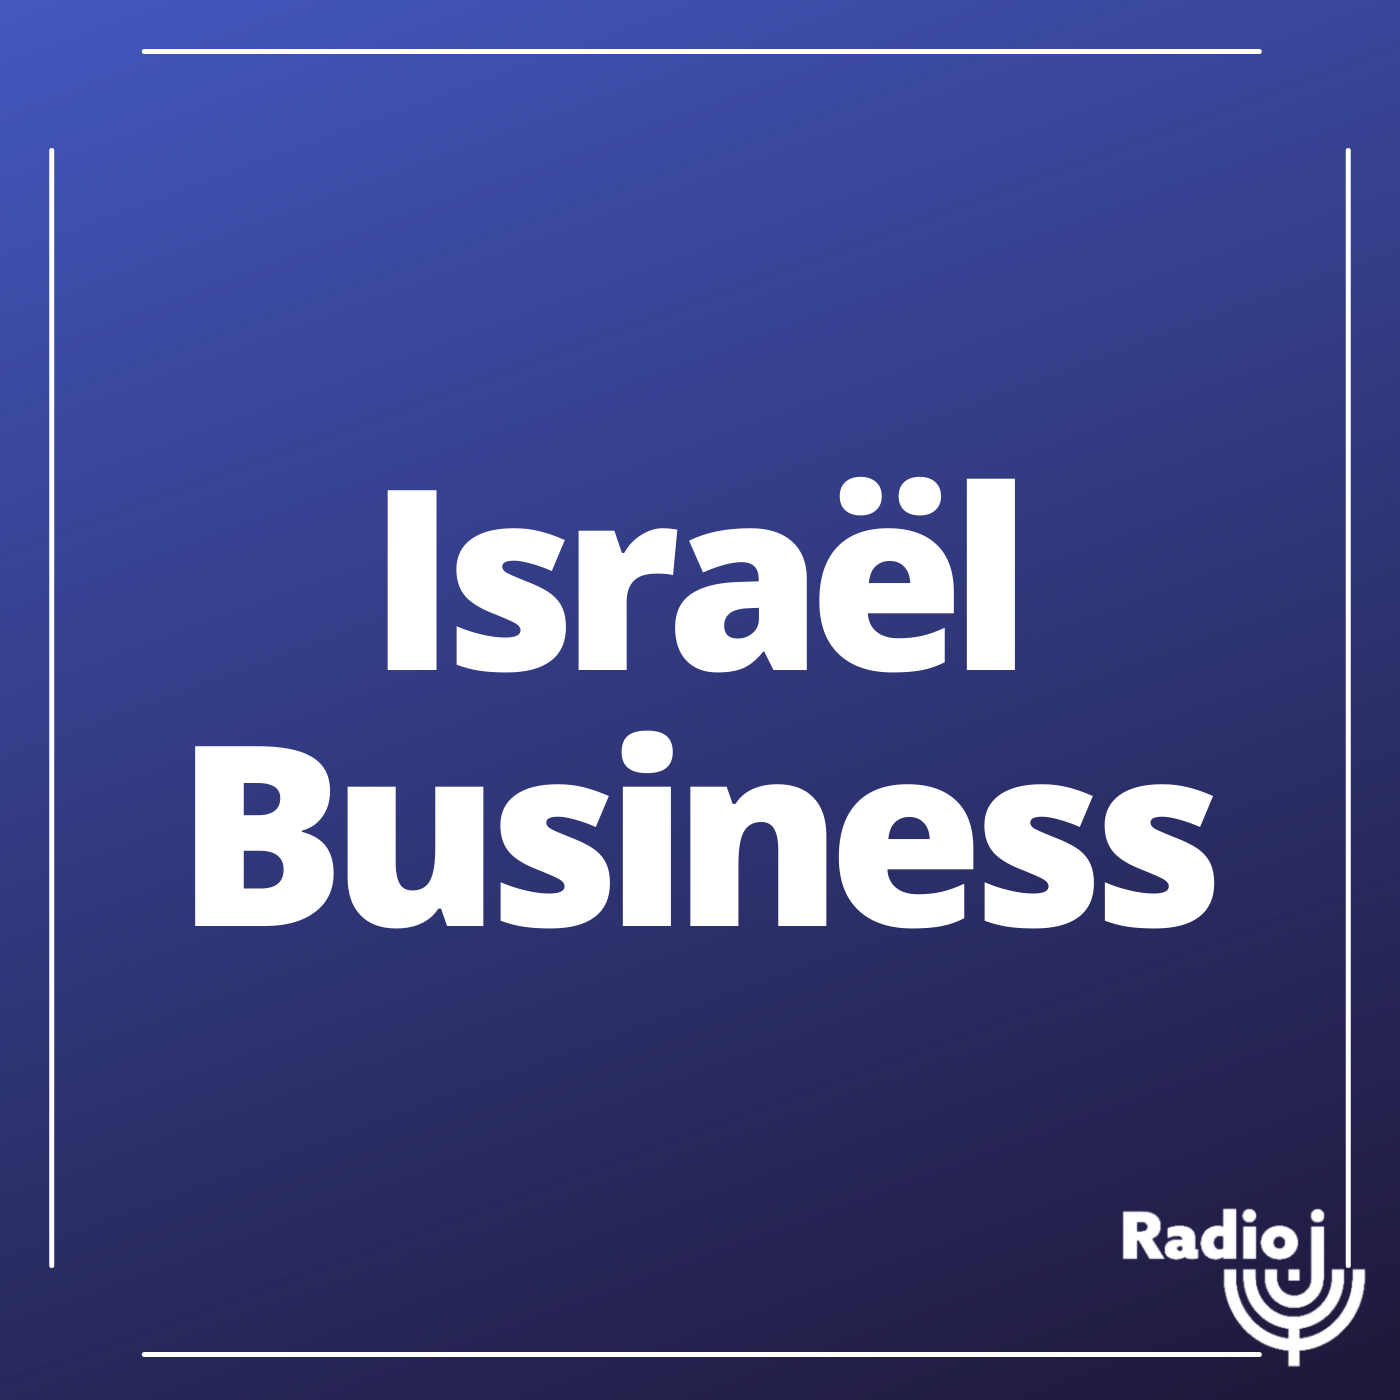 Israël Business